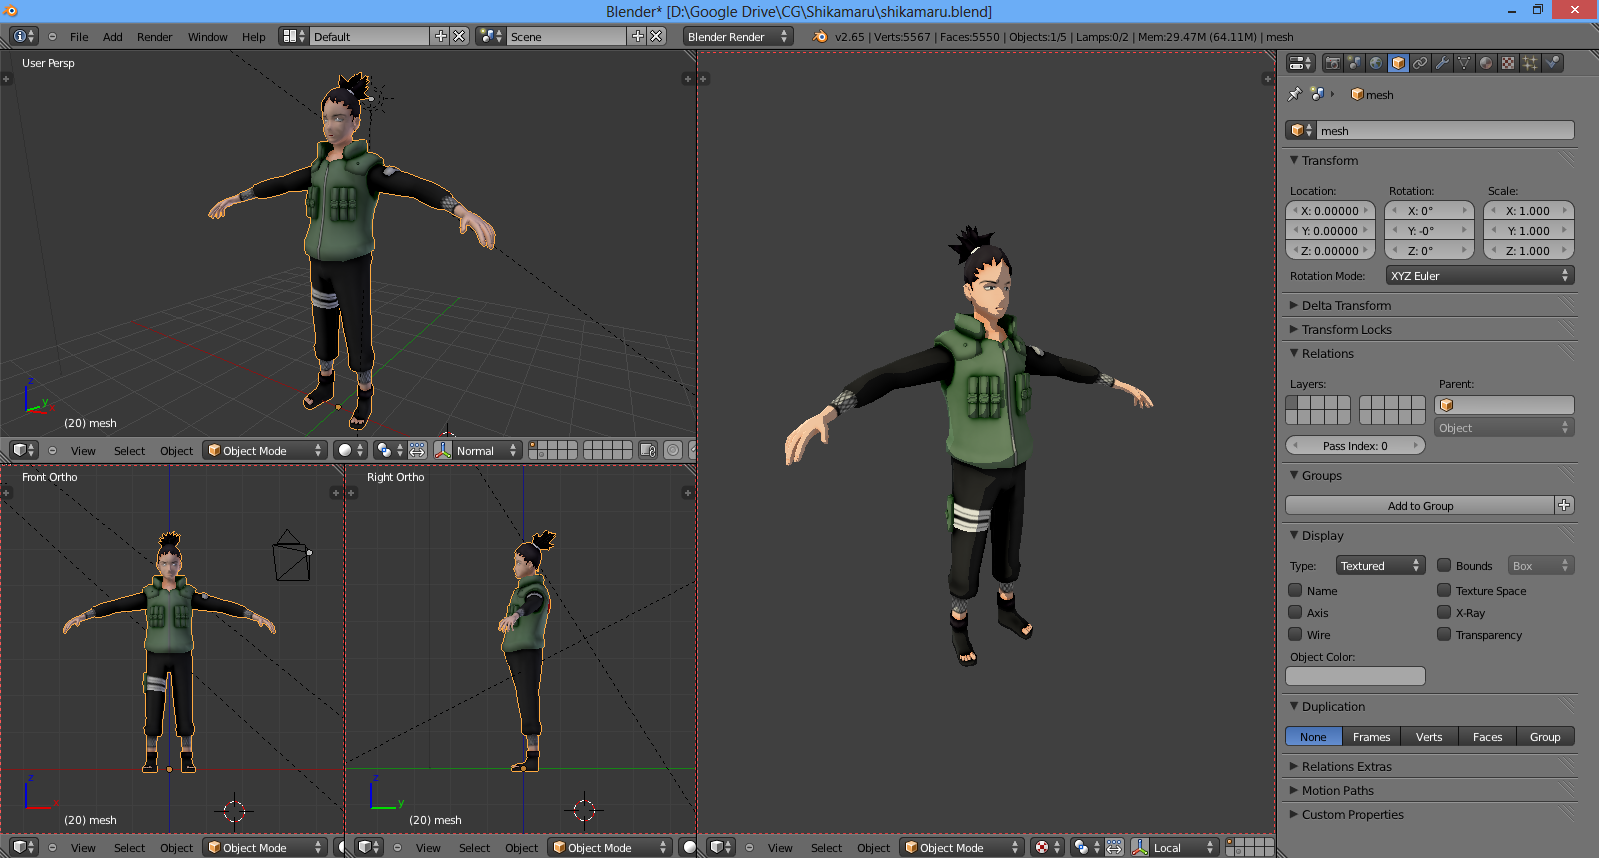 Game Character Modeling In Blender : Shikamaru d model in blender by lasshi on deviantart